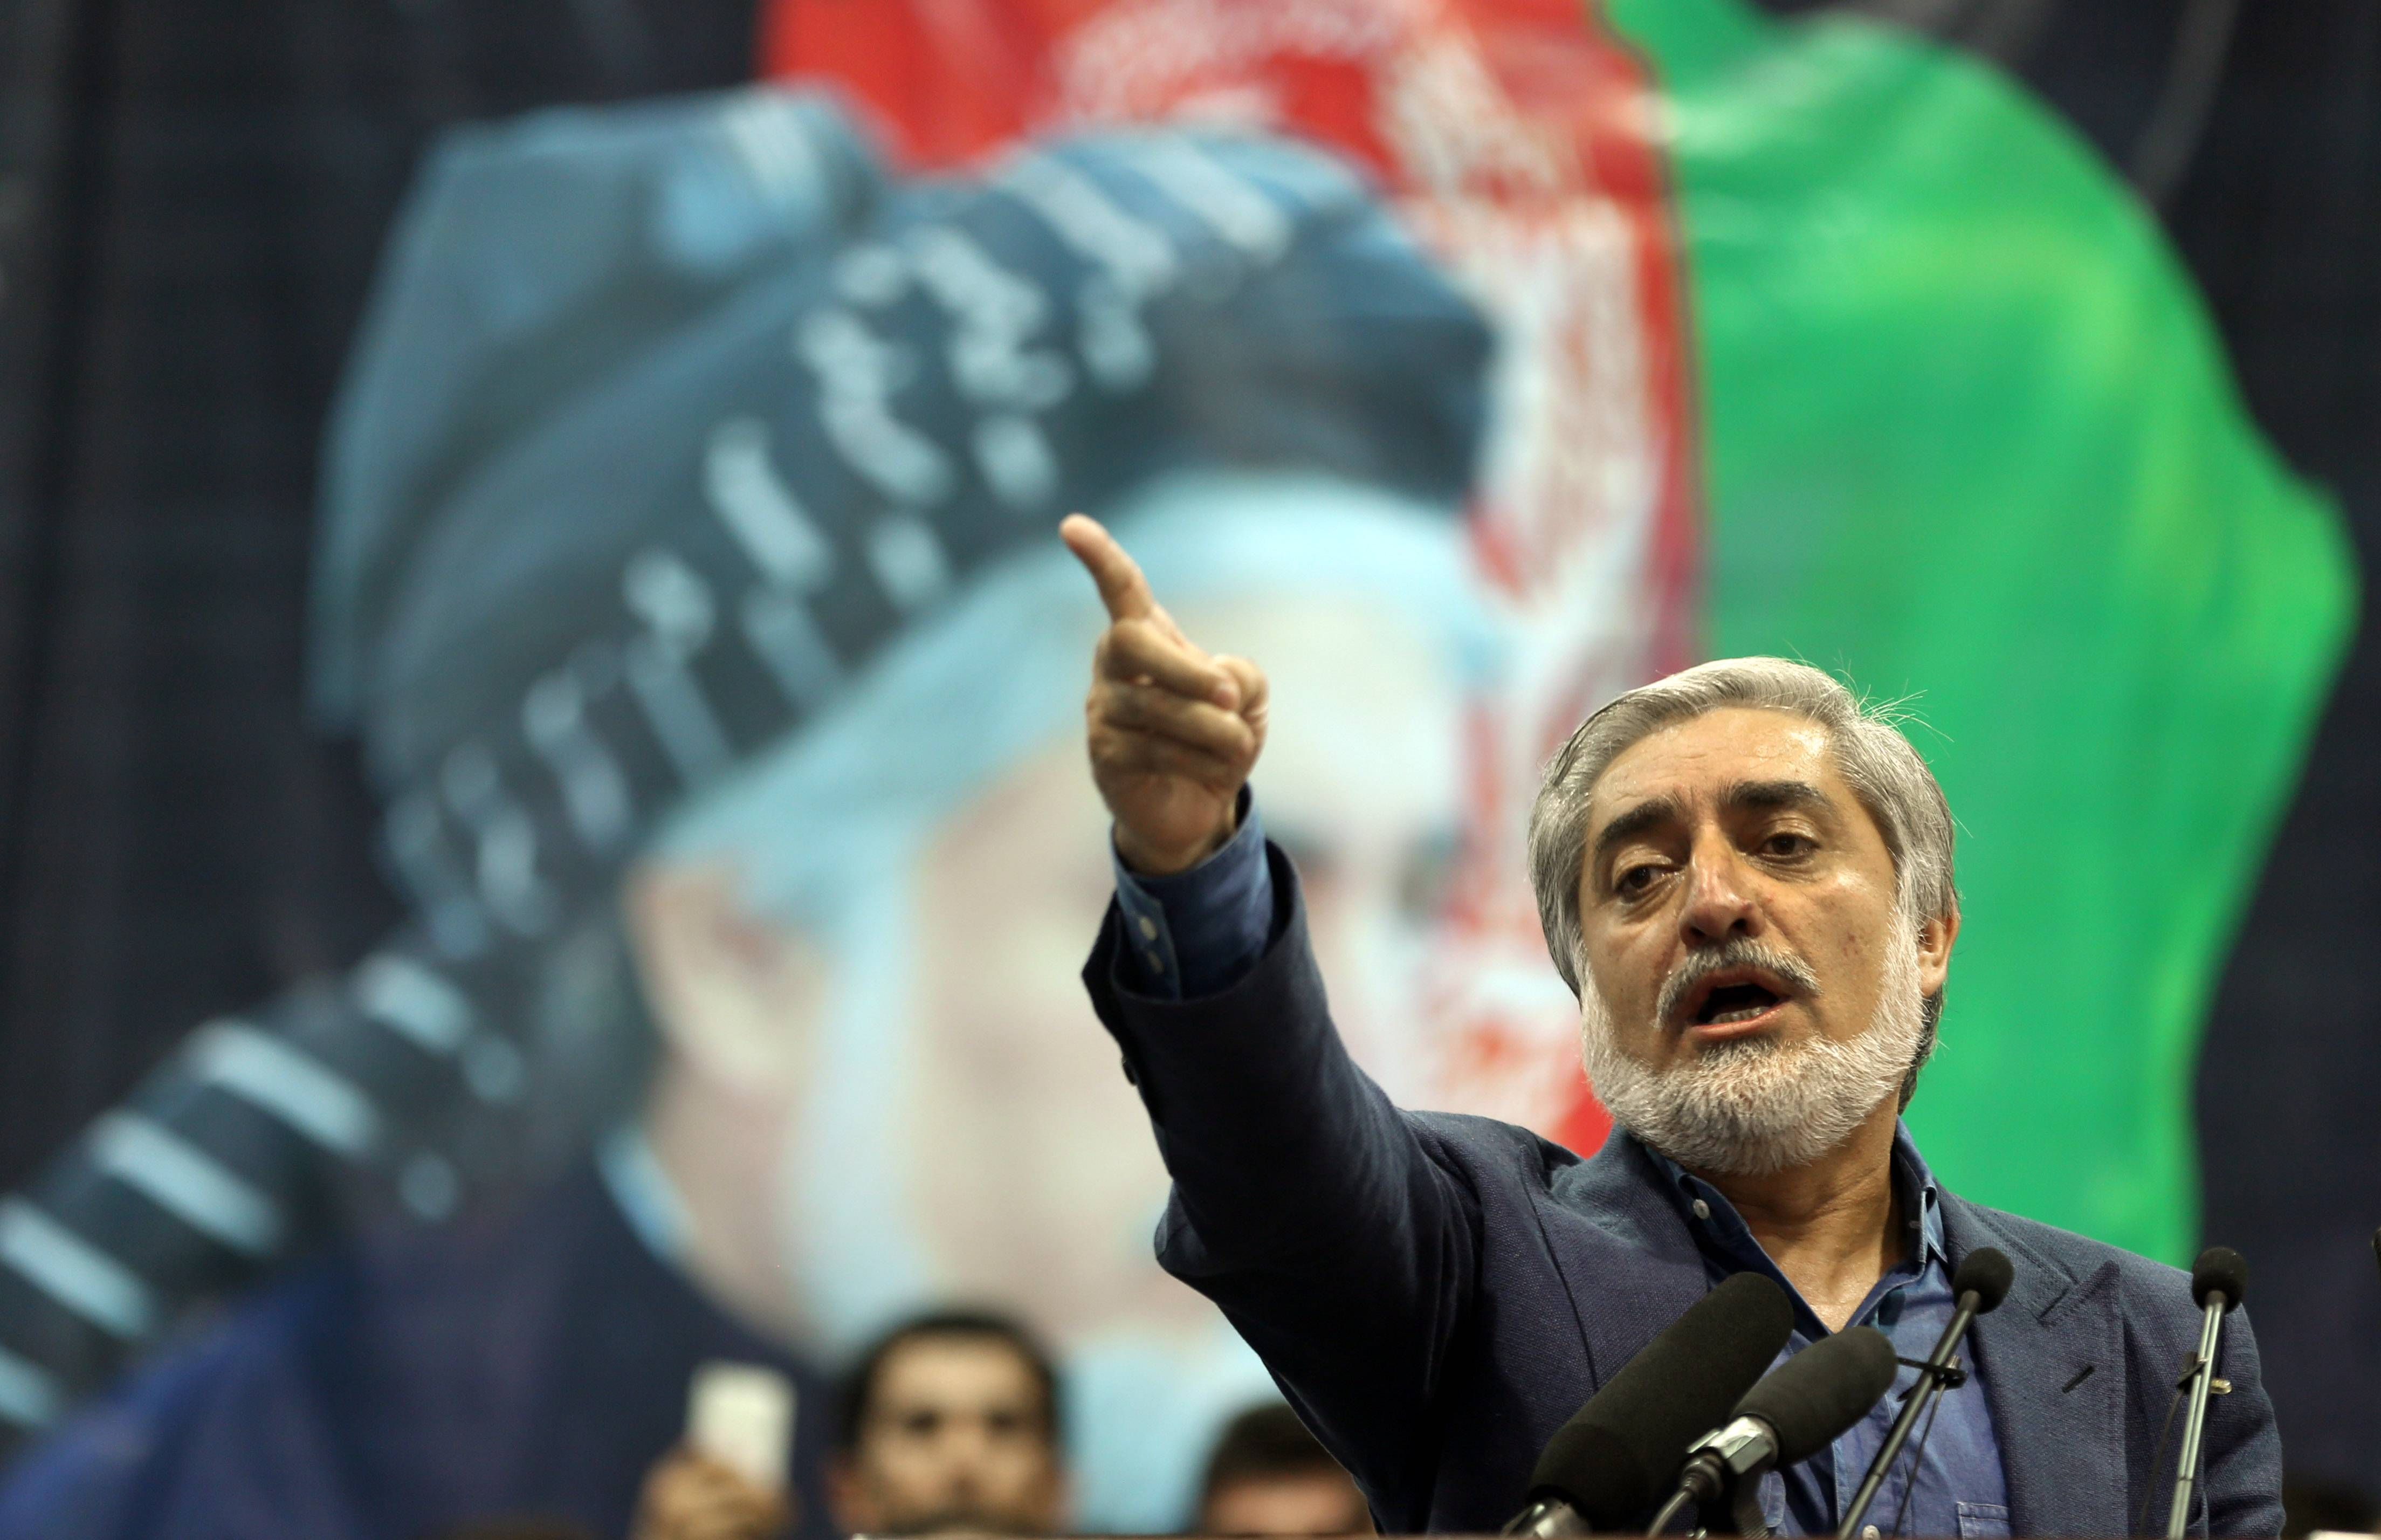 Afghan presidential candidate Abdullah Abdullah speaks during a gathering of his supporters in Kabul on Tuesday. Abdullah says he received calls from President Barack Obama and U.S. Secretary of State John Kerry after he refused to accept the preliminary result of the vote citing fraud.